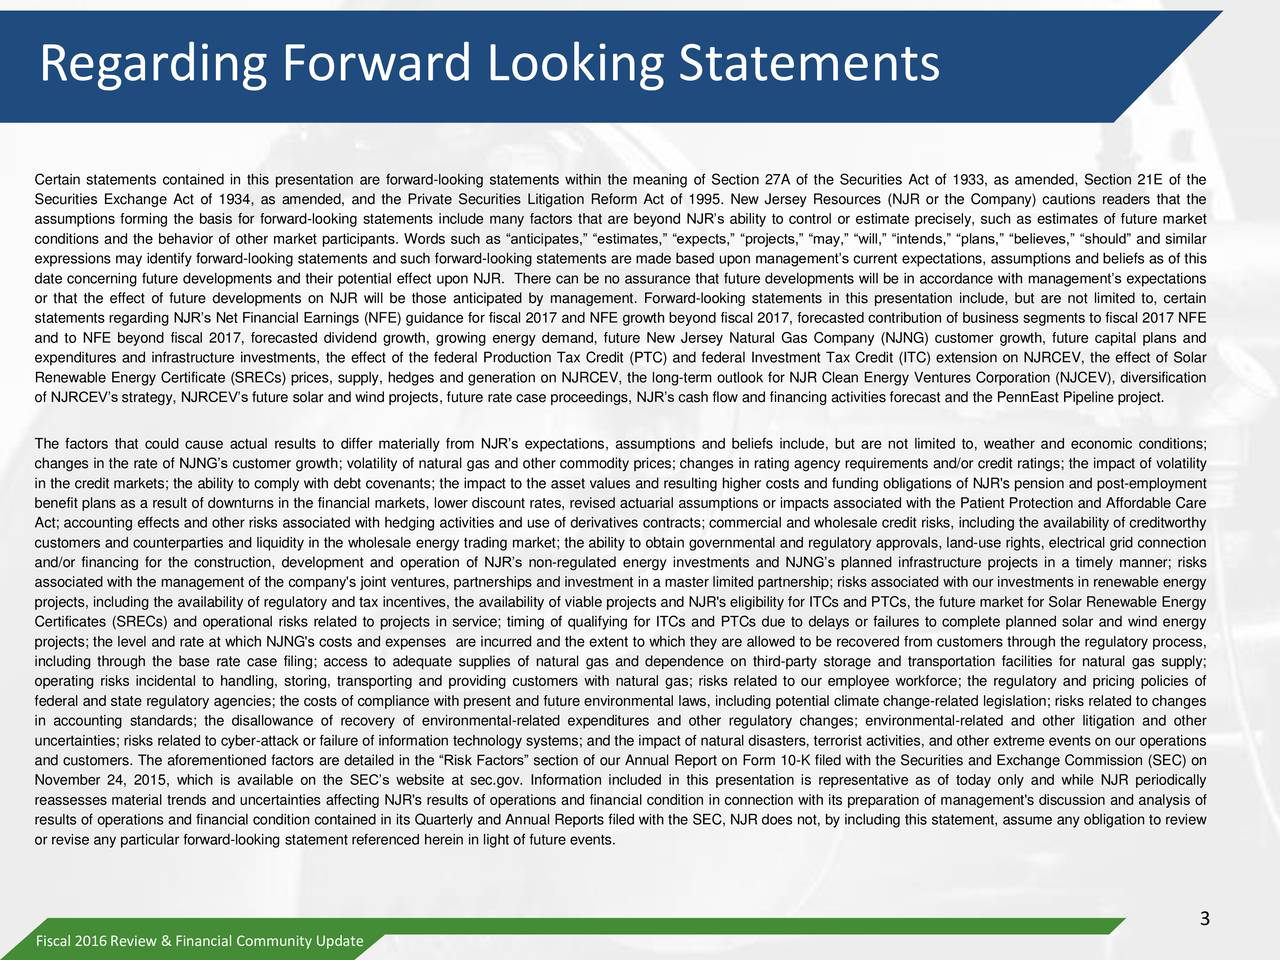 Certain statements contained in this presentation are forward-looking statements within the meaning of Section 27A of the Securities Act of 1933, as amended, Section 21E of the Securities Exchange Act of 1934, as amended, and the Private Securities Litigation Reform Act of 1995. New Jersey Resources (NJR or the Company) cautions readers that the assumptions forming the basis for forward-looking statements include many factors that are beyond NJRs ability to control or estimate precisely, such as estimates of future market conditions and the behavior of other market participants. Words such as anticipates, estimates, expects, projects, may, will, intends, plans, believes, should and similar expressions may identify forward-looking statements and such forward-looking statements are made based upon managements current expectations, assumptions and beliefs as of this date concerning future developments and their potential effect upon NJR. There can be no assurance that future developments will be in accordance with managements expectations or that the effect of future developments on NJR will be those anticipated by management. Forward-looking statements in this presentation include, but are not limited to, certain statements regarding NJRs Net Financial Earnings (NFE) guidance for fiscal 2017 and NFE growth beyond fiscal 2017, forecasted contribution of business segments to fiscal 2017 NFE and to NFE beyond fiscal 2017, forecasted dividend growth, growing energy demand, future New Jersey Natural Gas Company (NJNG) customer growth, future capital plans and expenditures and infrastructure investments, the effect of the federal Production Tax Credit (PTC) and federal Investment Tax Credit (ITC) extension on NJRCEV, the effect of Solar Renewable Energy Certificate (SRECs) prices, supply, hedges and generation on NJRCEV, the long-term outlook for NJR Clean Energy Ventures Corporation (NJCEV), diversification of NJRCEVs strategy, NJRCEVs future solar and wind projects, future rate case proceedings, NJRs cash flow and financing activities forecast and the PennEast Pipeline project. The factors that could cause actual results to differ materially from NJRs expectations, assumptions and beliefs include, but are not limited to, weather and economic conditions; changes in the rate of NJNGs customer growth; volatility of natural gas and other commodity prices; changes in rating agency requirements and/or credit ratings; the impact of volatility in the credit markets; the ability to comply with debt covenants; the impact to the asset values and resulting higher costs and funding obligations of NJR's pension and post-employment benefit plans as a result of downturns in the financial markets, lower discount rates, revised actuarial assumptions or impacts associated with the Patient Protection and Affordable Care Act; accounting effects and other risks associated with hedging activities and use of derivatives contracts; commercial and wholesale credit risks, including the availability of creditworthy customers and counterparties and liquidity in the wholesale energy trading market; the ability to obtain governmental and regulatory approvals, land-use rights, electrical grid connection and/or financing for the construction, development and operation of NJRs non-regulated energy investments and NJNGs planned infrastructure projects in a timely manner; risks associated with the management of the company's joint ventures, partnerships and investment in a master limited partnership; risks associated with our investments in renewable energy projects, including the availability of regulatory and tax incentives, the availability of viable projects and NJR's eligibility for ITCs and PTCs, the future market for Solar Renewable Energy Certificates (SRECs) and operational risks related to projects in service; timing of qualifying for ITCs and PTCs due to delays or failures to complete planned solar and wind energy projects; the level and rate at which NJNG's costs and expenses are incurred and the extent to which they are allowed to be recovered from customers through the regulatory process, including through the base rate case filing; access to adequate supplies of natural gas and dependence on third-party storage and transportation facilities for natural gas supply; operating risks incidental to handling, storing, transporting and providing customers with natural gas; risks related to our employee workforce; the regulatory and pricing policies of federal and state regulatory agencies; the costs of compliance with present and future environmental laws, including potential climate change-related legislation; risks related to changes in accounting standards; the disallowance of recovery of environmental-related expenditures and other regulatory changes; environmental-related and other litigation and other uncertainties; risks related to cyber-attack or failure of information technology systems; and the impact of natural disasters, terrorist activities, and other extreme events on our operations and customers. The aforementioned factors are detailed in the Risk Factors section of our Annual Report on Form 10-K filed with the Securities and Exchange Commission (SEC) on November 24, 2015, which is available on the SECs website at sec.gov. Information included in this presentation is representative as of today only and while NJR periodically reassesses material trends and uncertainties affecting NJR's results of operations and financial condition in connection with its preparation of management's discussion and analysis of results of operations and financial condition contained in its Quarterly and Annual Reports filed with the SEC, NJR does not, by including this statement, assume any obligation to review or revise any particular forward-looking statement referenced herein in light of future events. 3 Fiscal 2016 Review & Financial Community Update